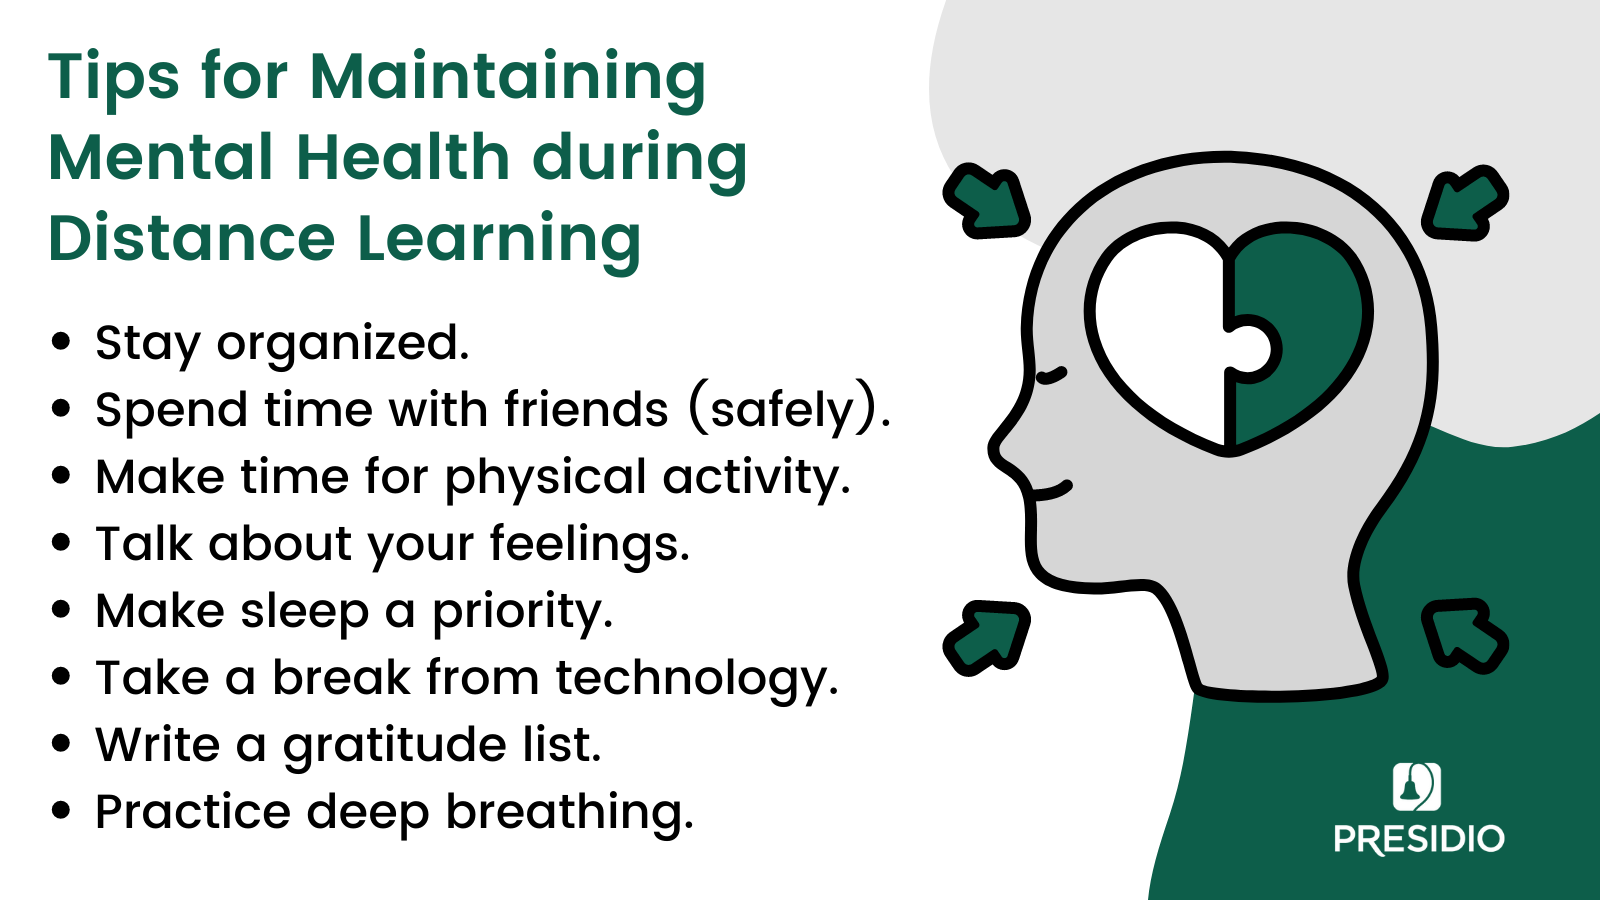 Mental Health Tips for Distance Learning